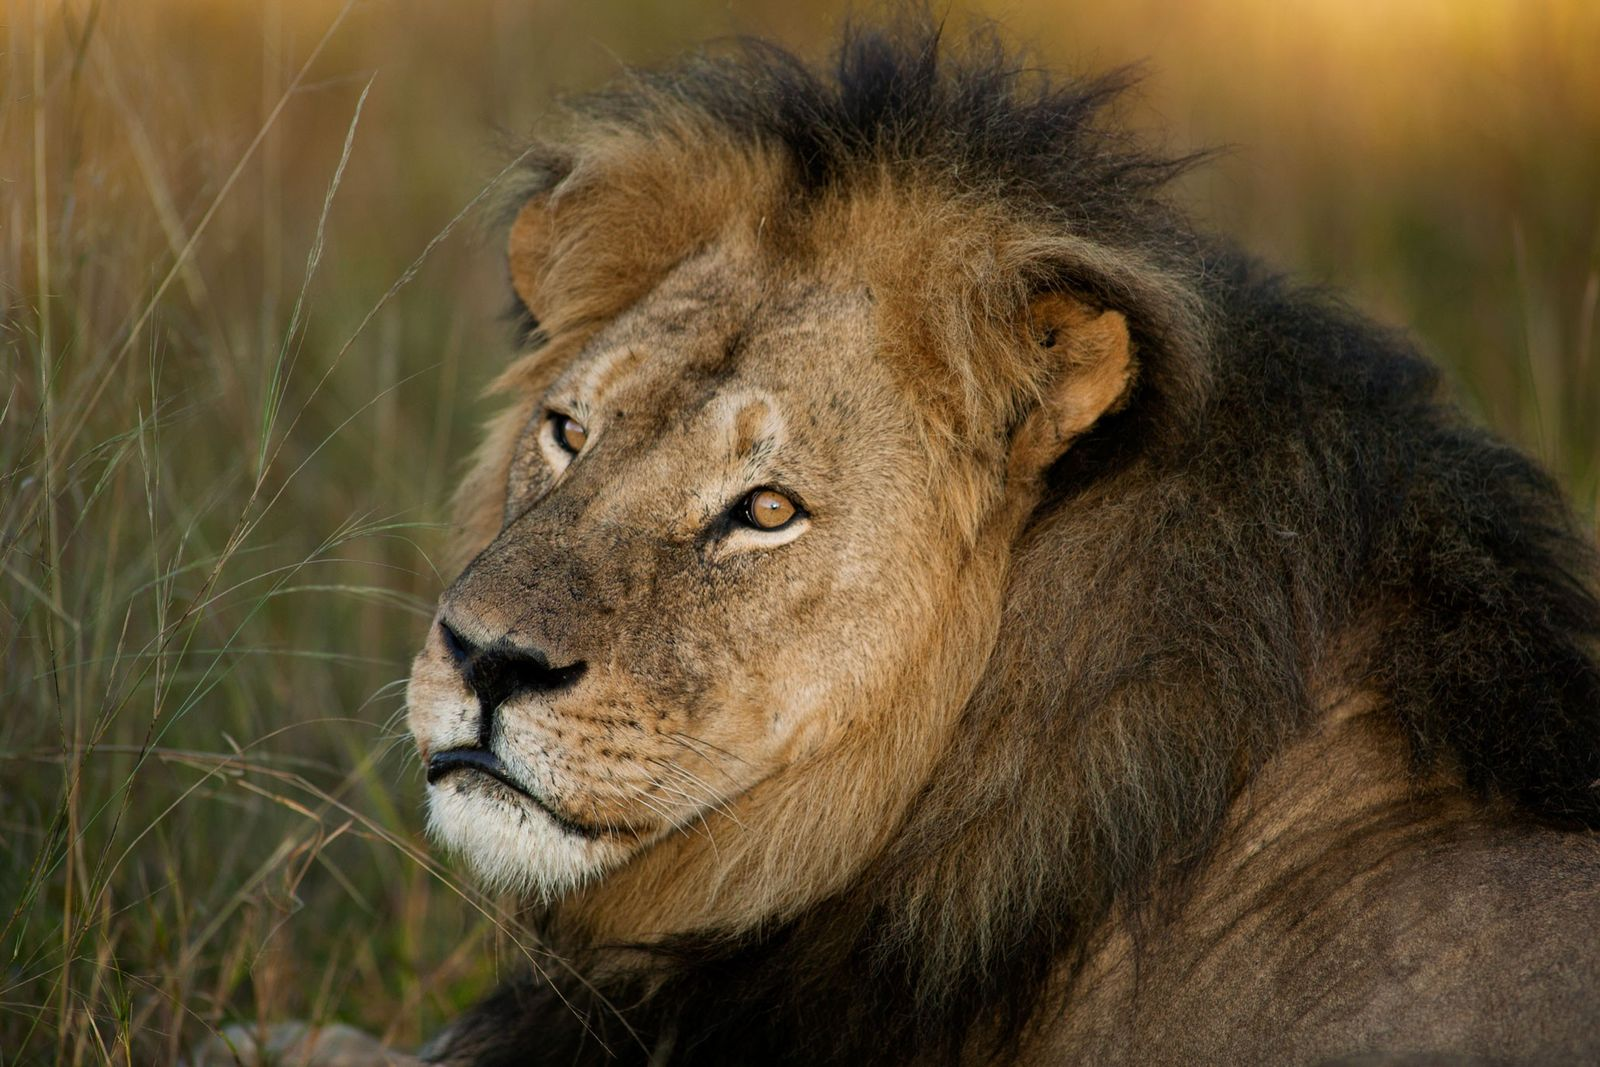 Cecil lived in Hwange National Park, in Zimbabwe. He was allegedly lured out of the park ...